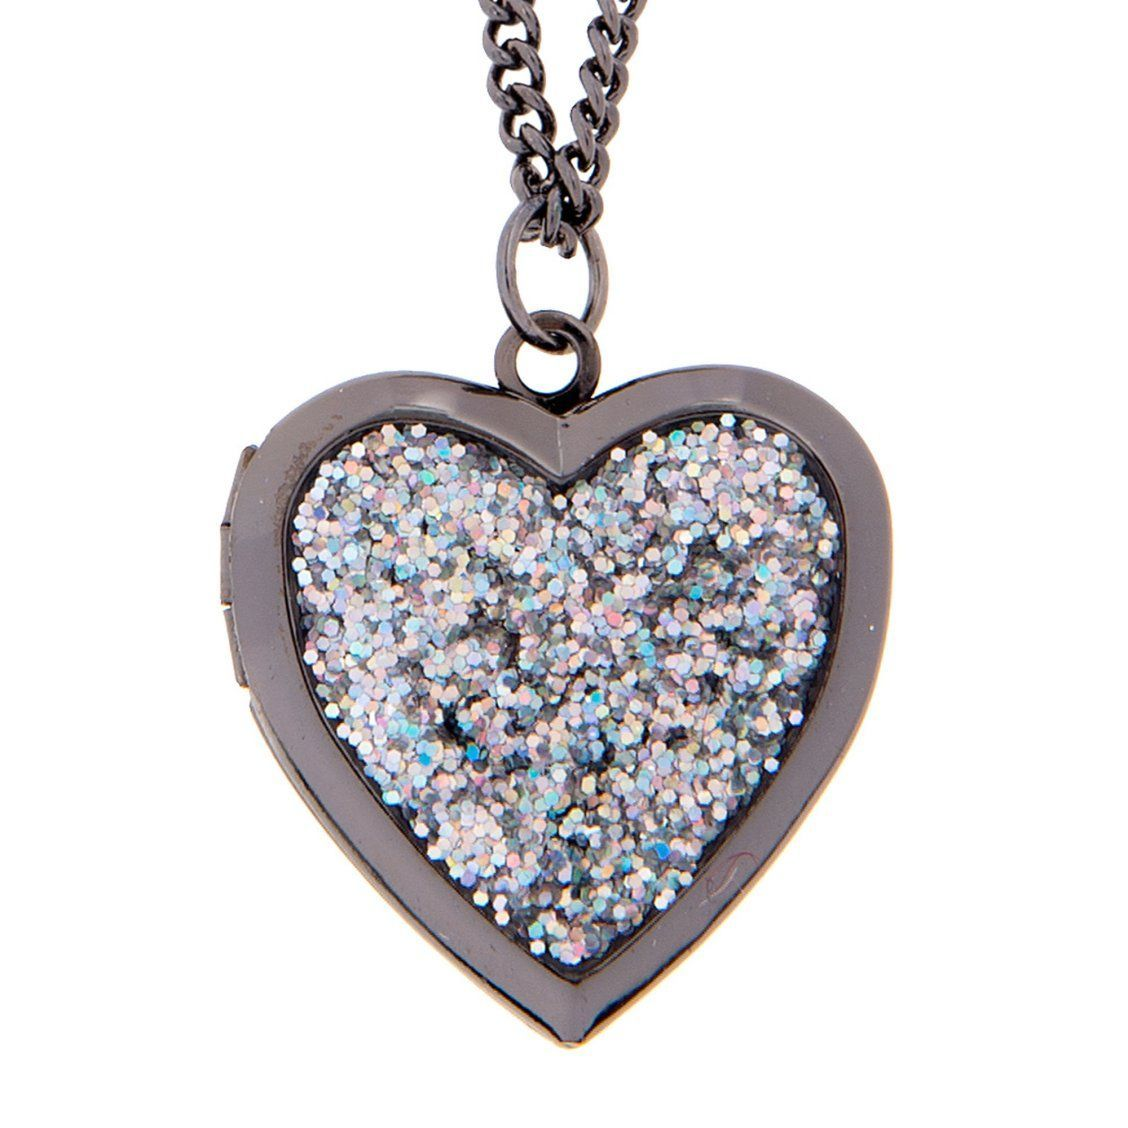 Glitter Heart Locket Pendant Necklace Let love sparkle and shine